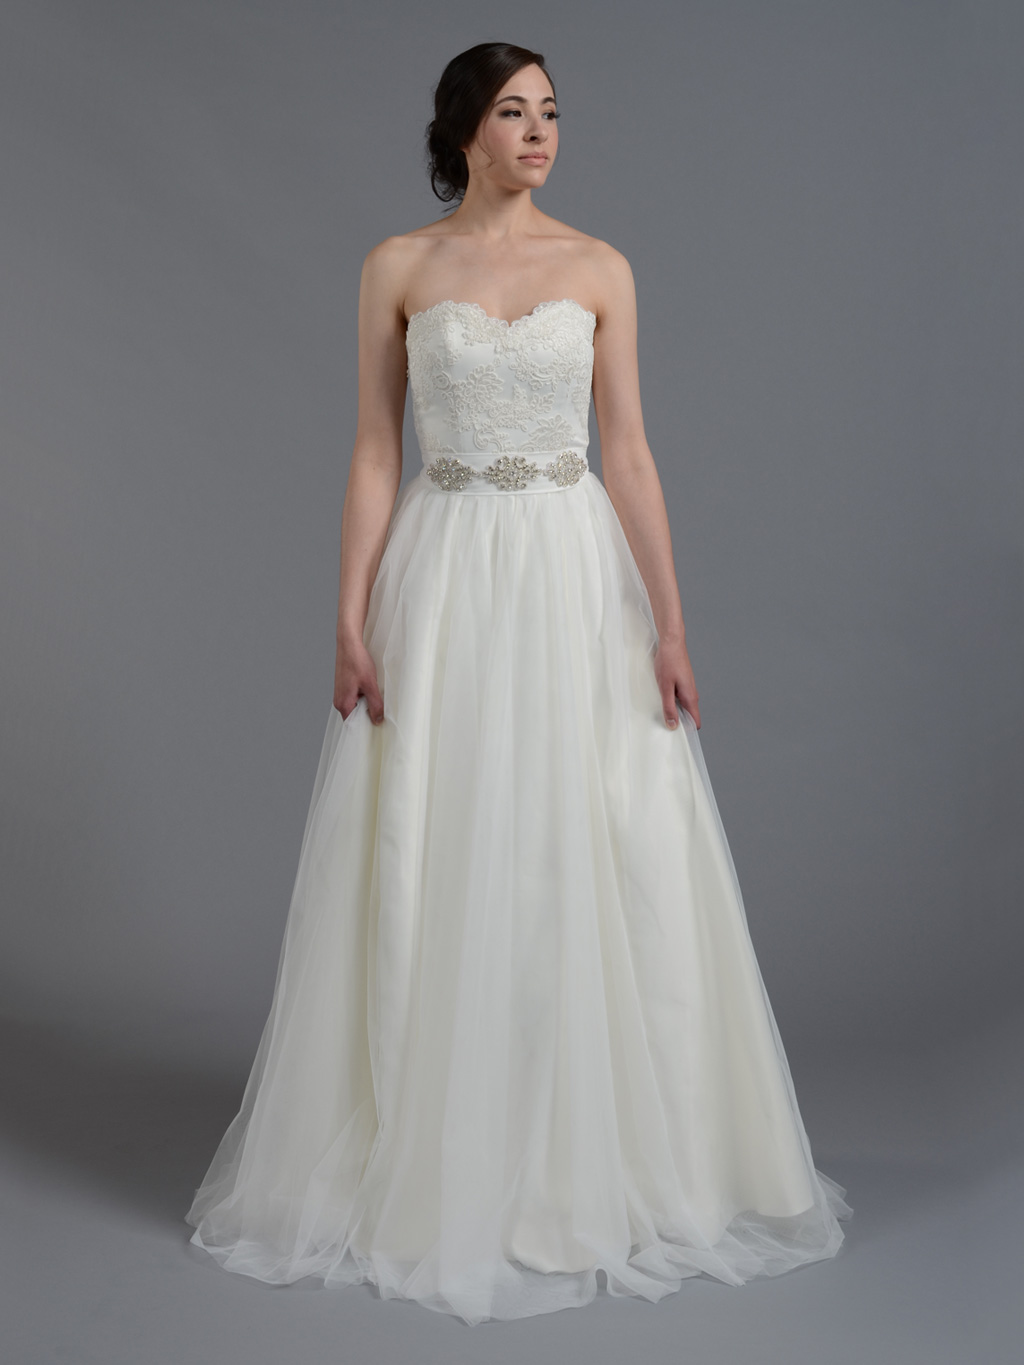 f236bf74e7921 Ivory strapless lace wedding dress with tulle skirt